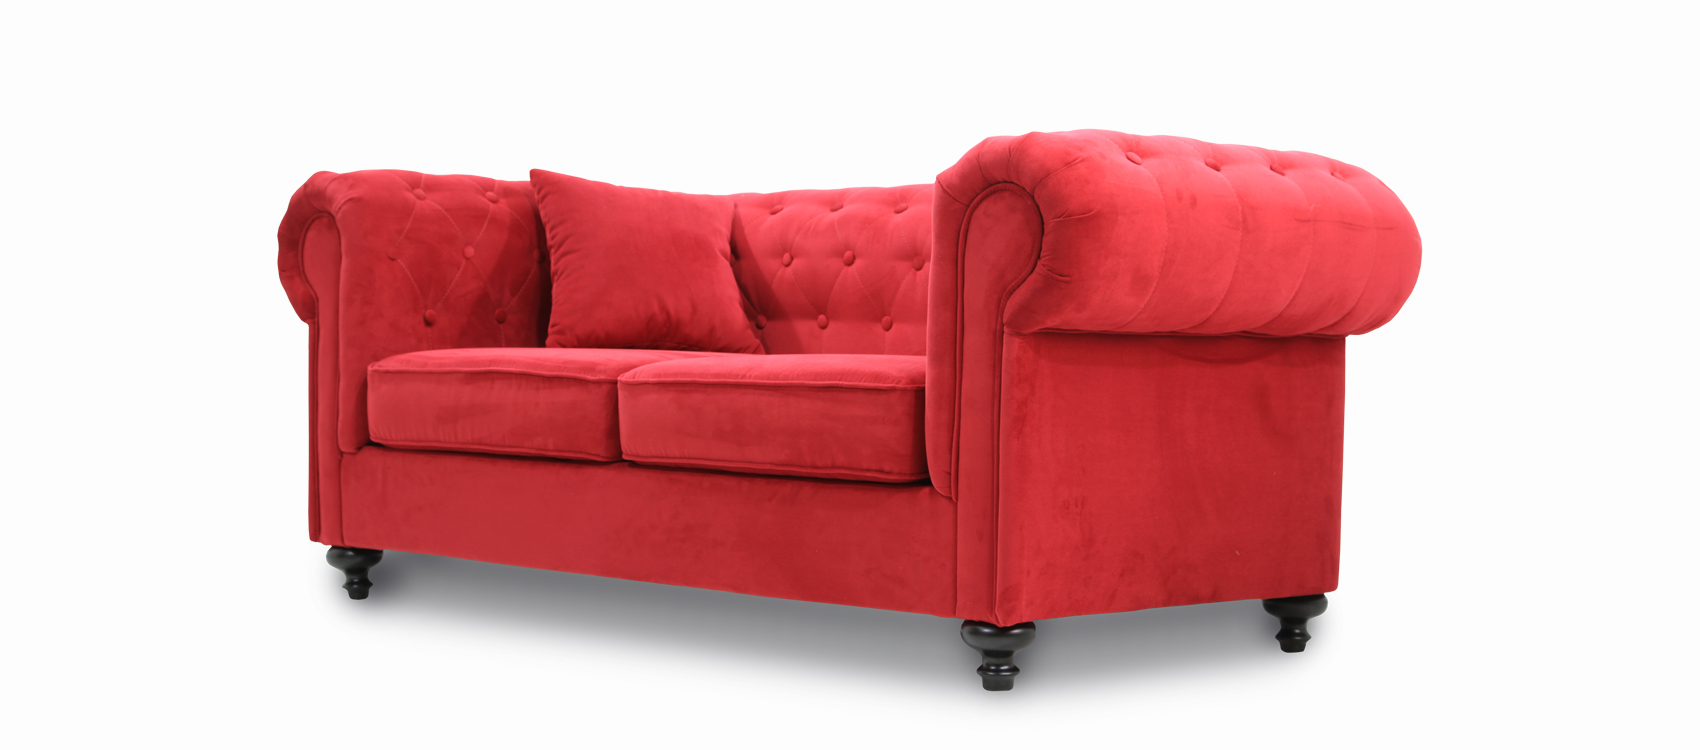 CHESTER YORK 2 SEATER фото 2